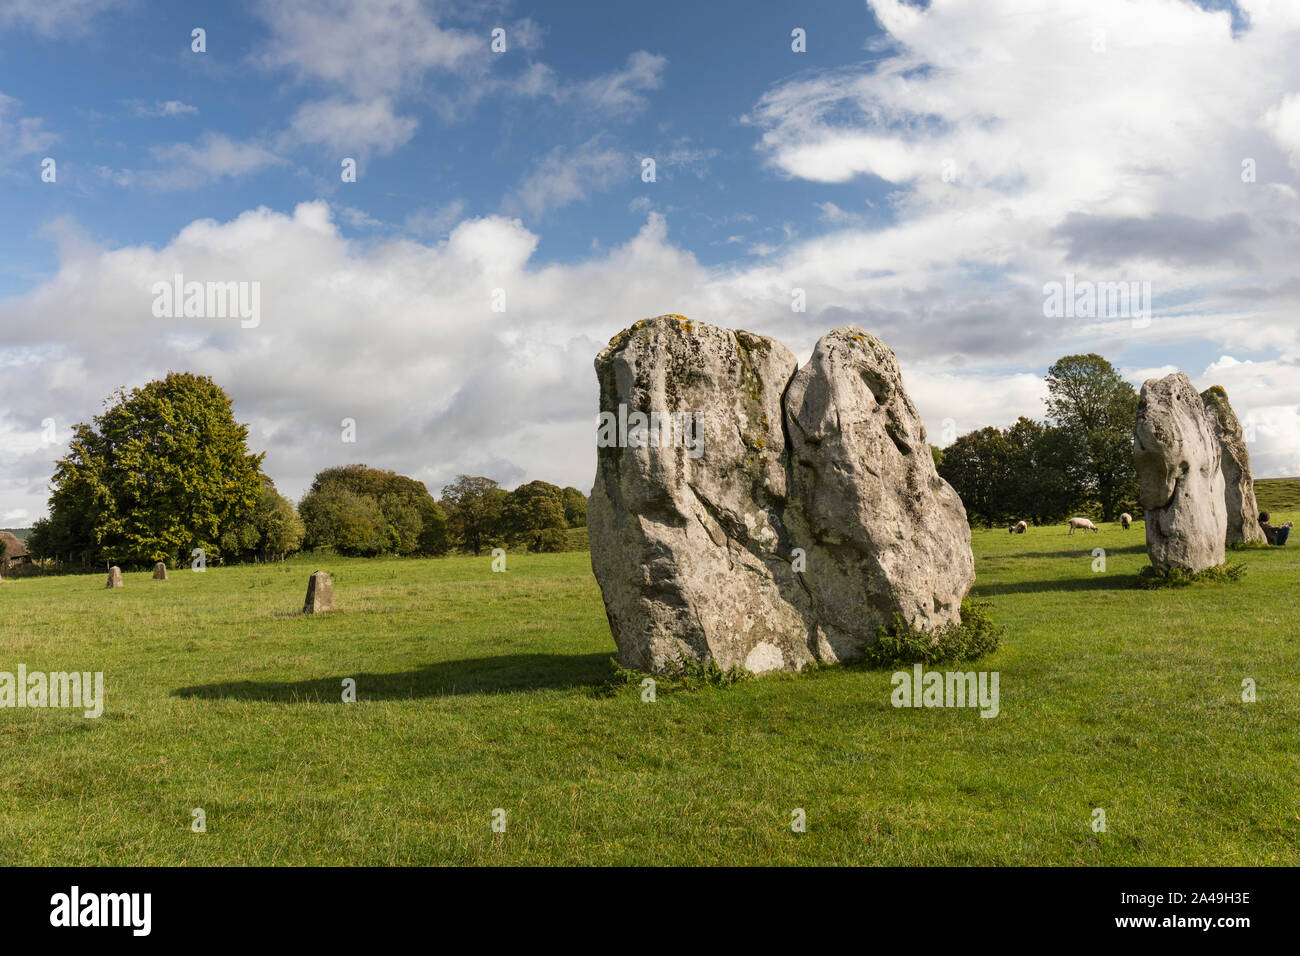 Standing stones at Avebury, Wiltshire a UNESCO World Heritage Site Stock Photo